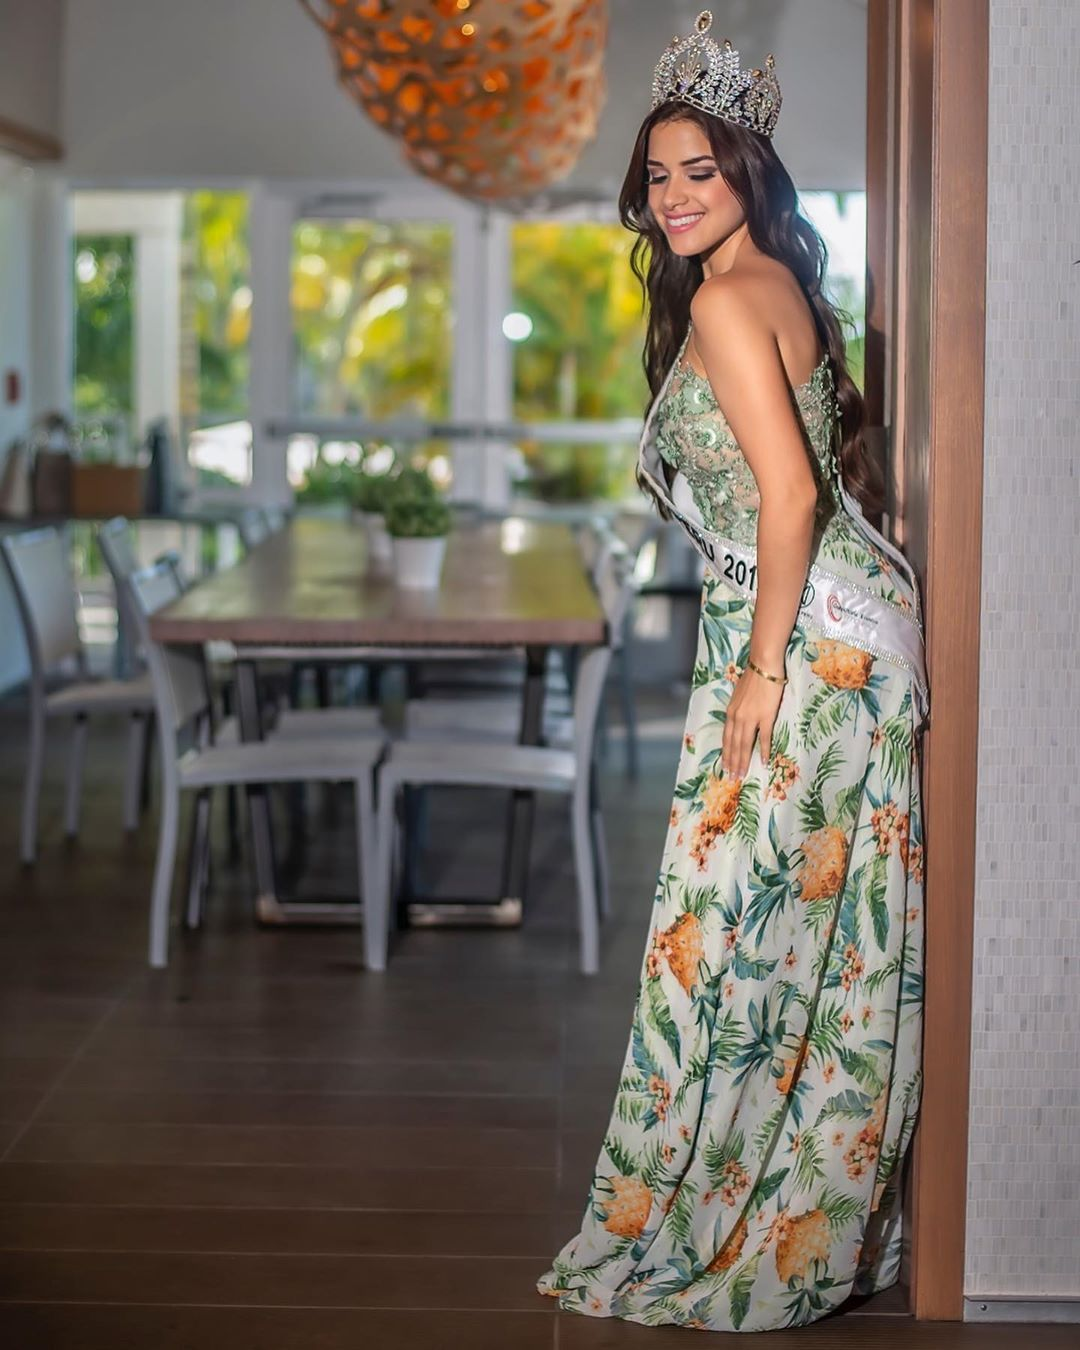 angella escudero, miss world peru 2019. 75454111